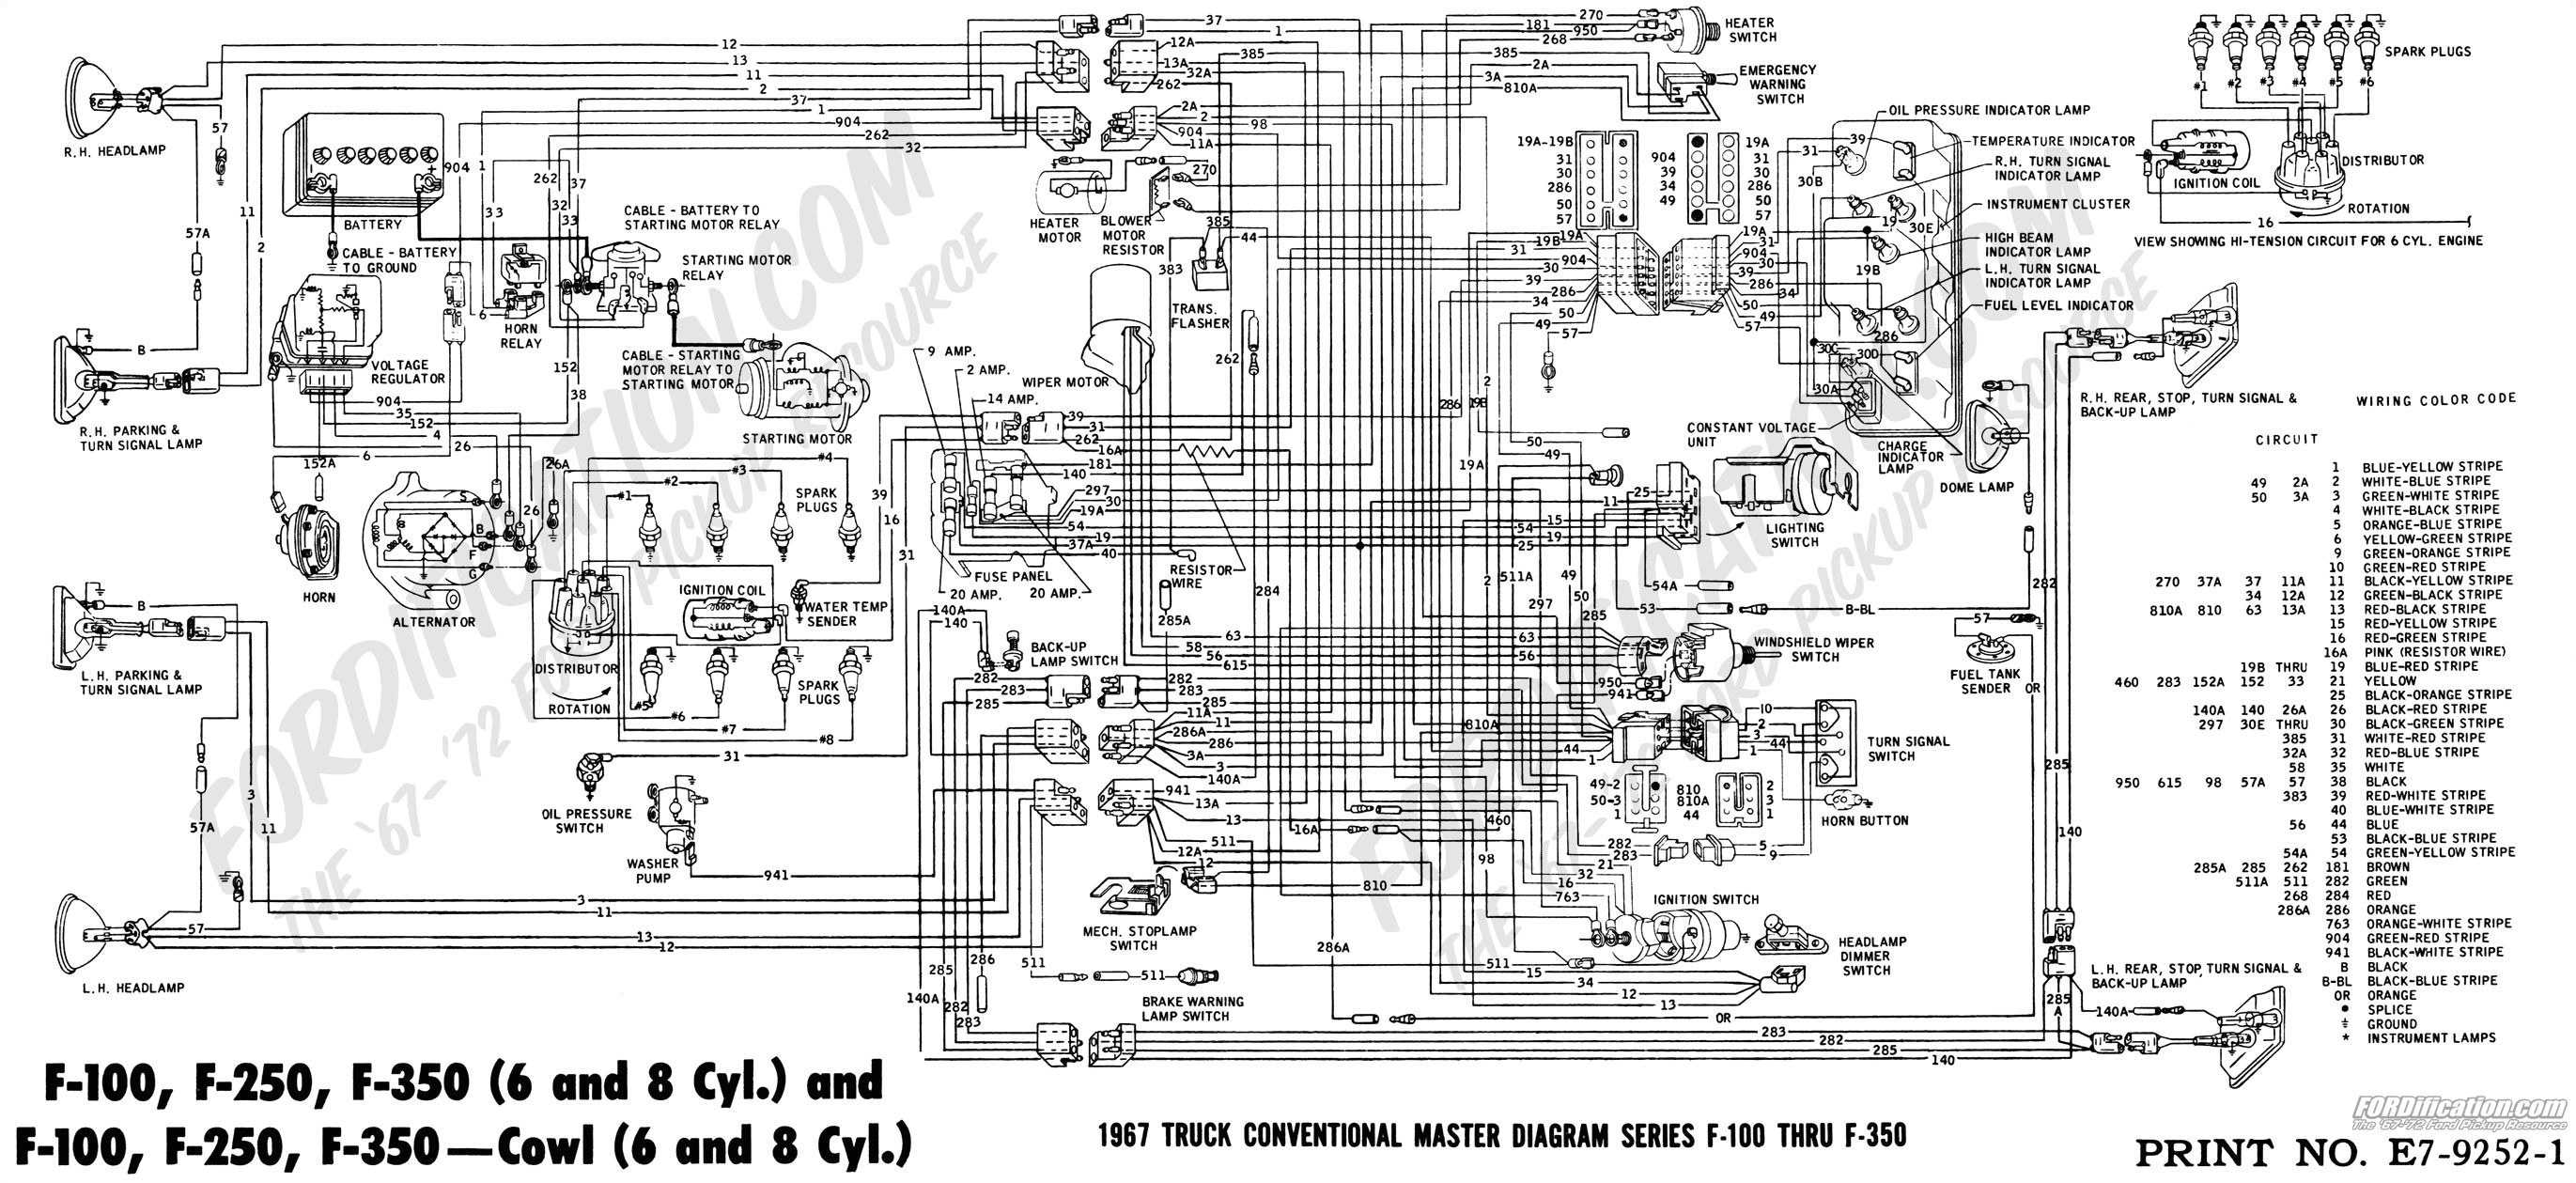 1953 ford wiring harness wiring diagram img 1953 ford truck wiring diagram